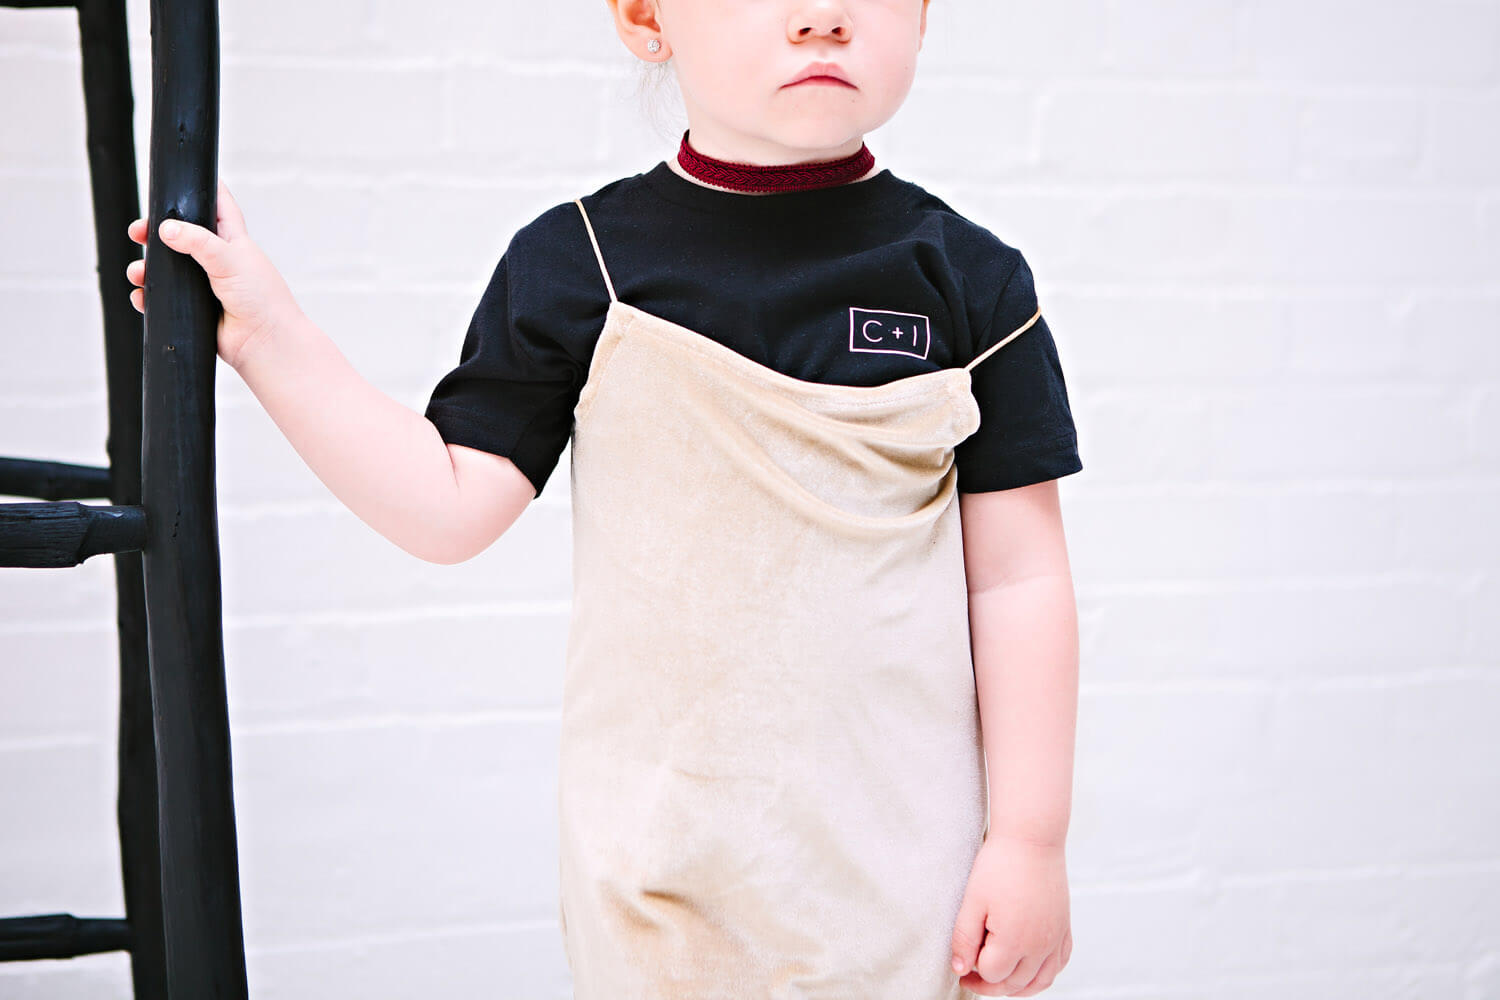 CI kids t-shirt, champagne velvet coco slip dress